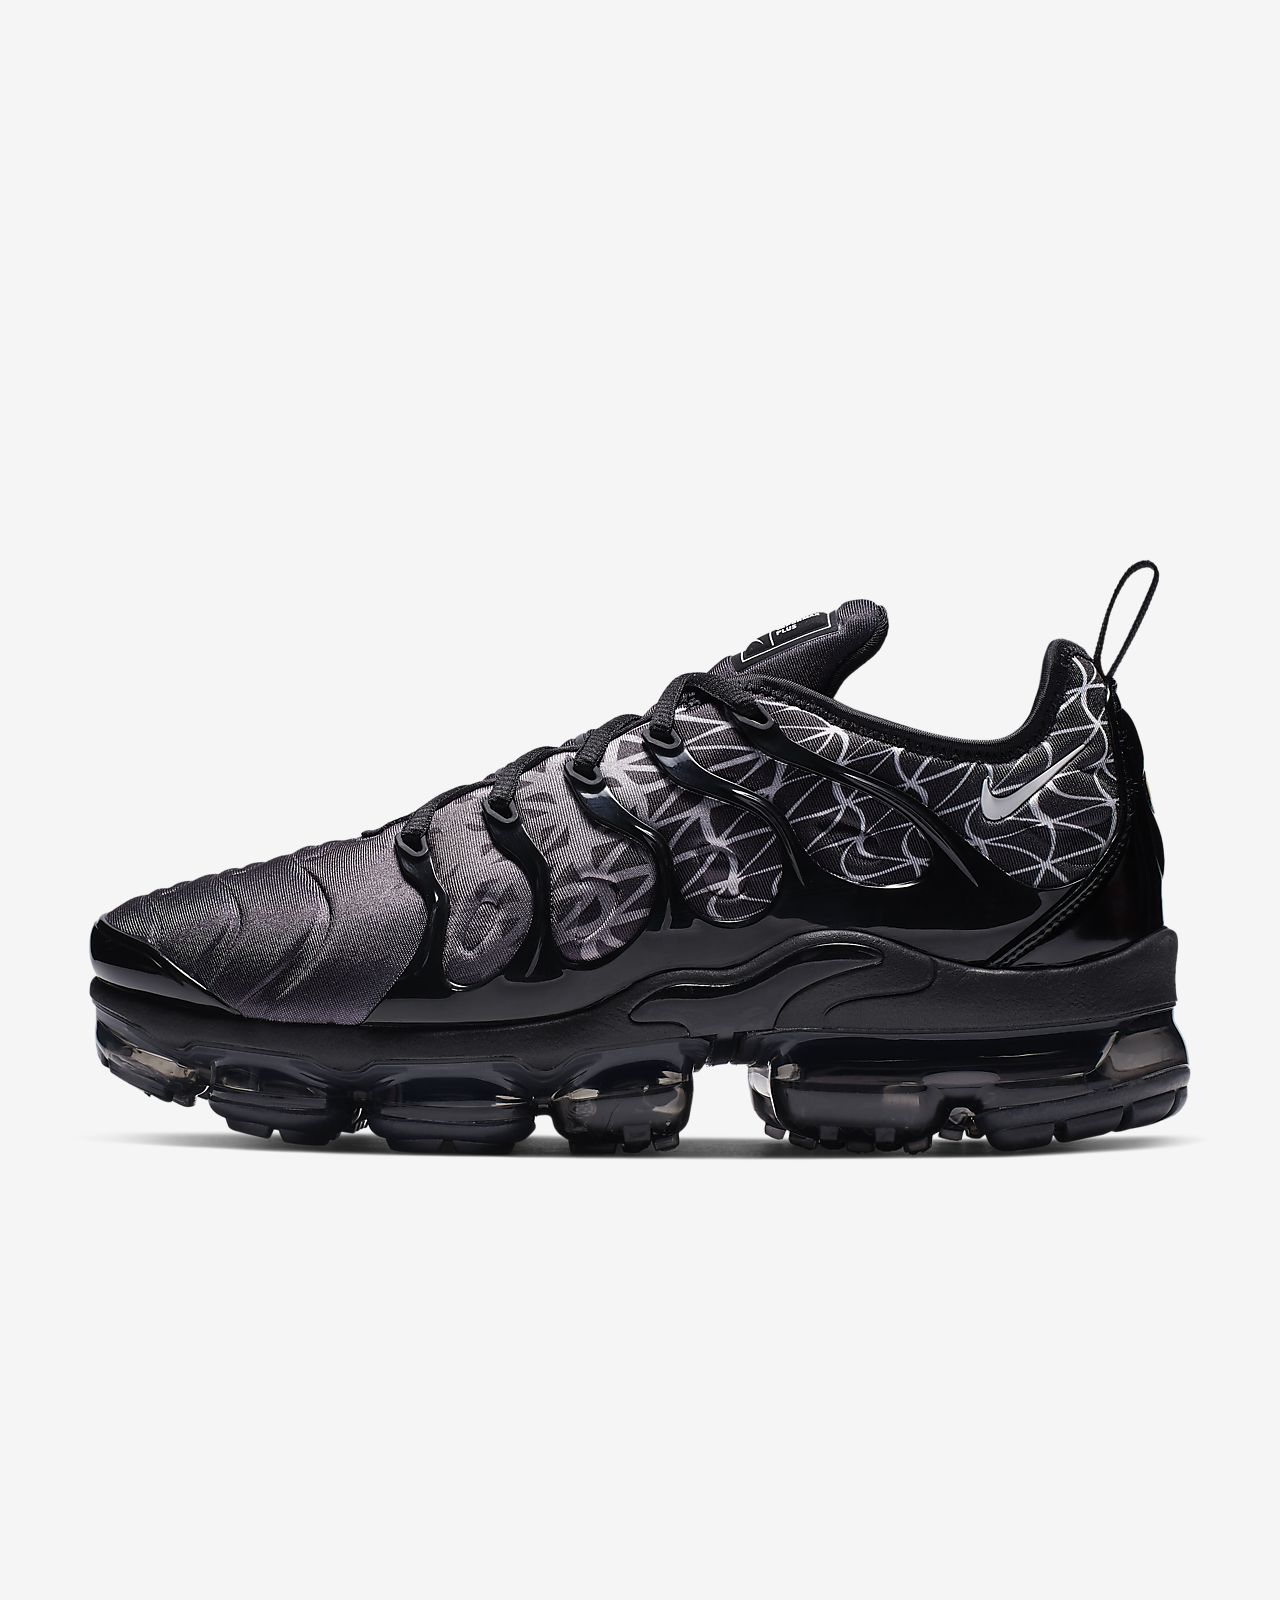 9b0be1043c6 Nike Air VaporMax Plus Men s Shoe. Nike.com GB